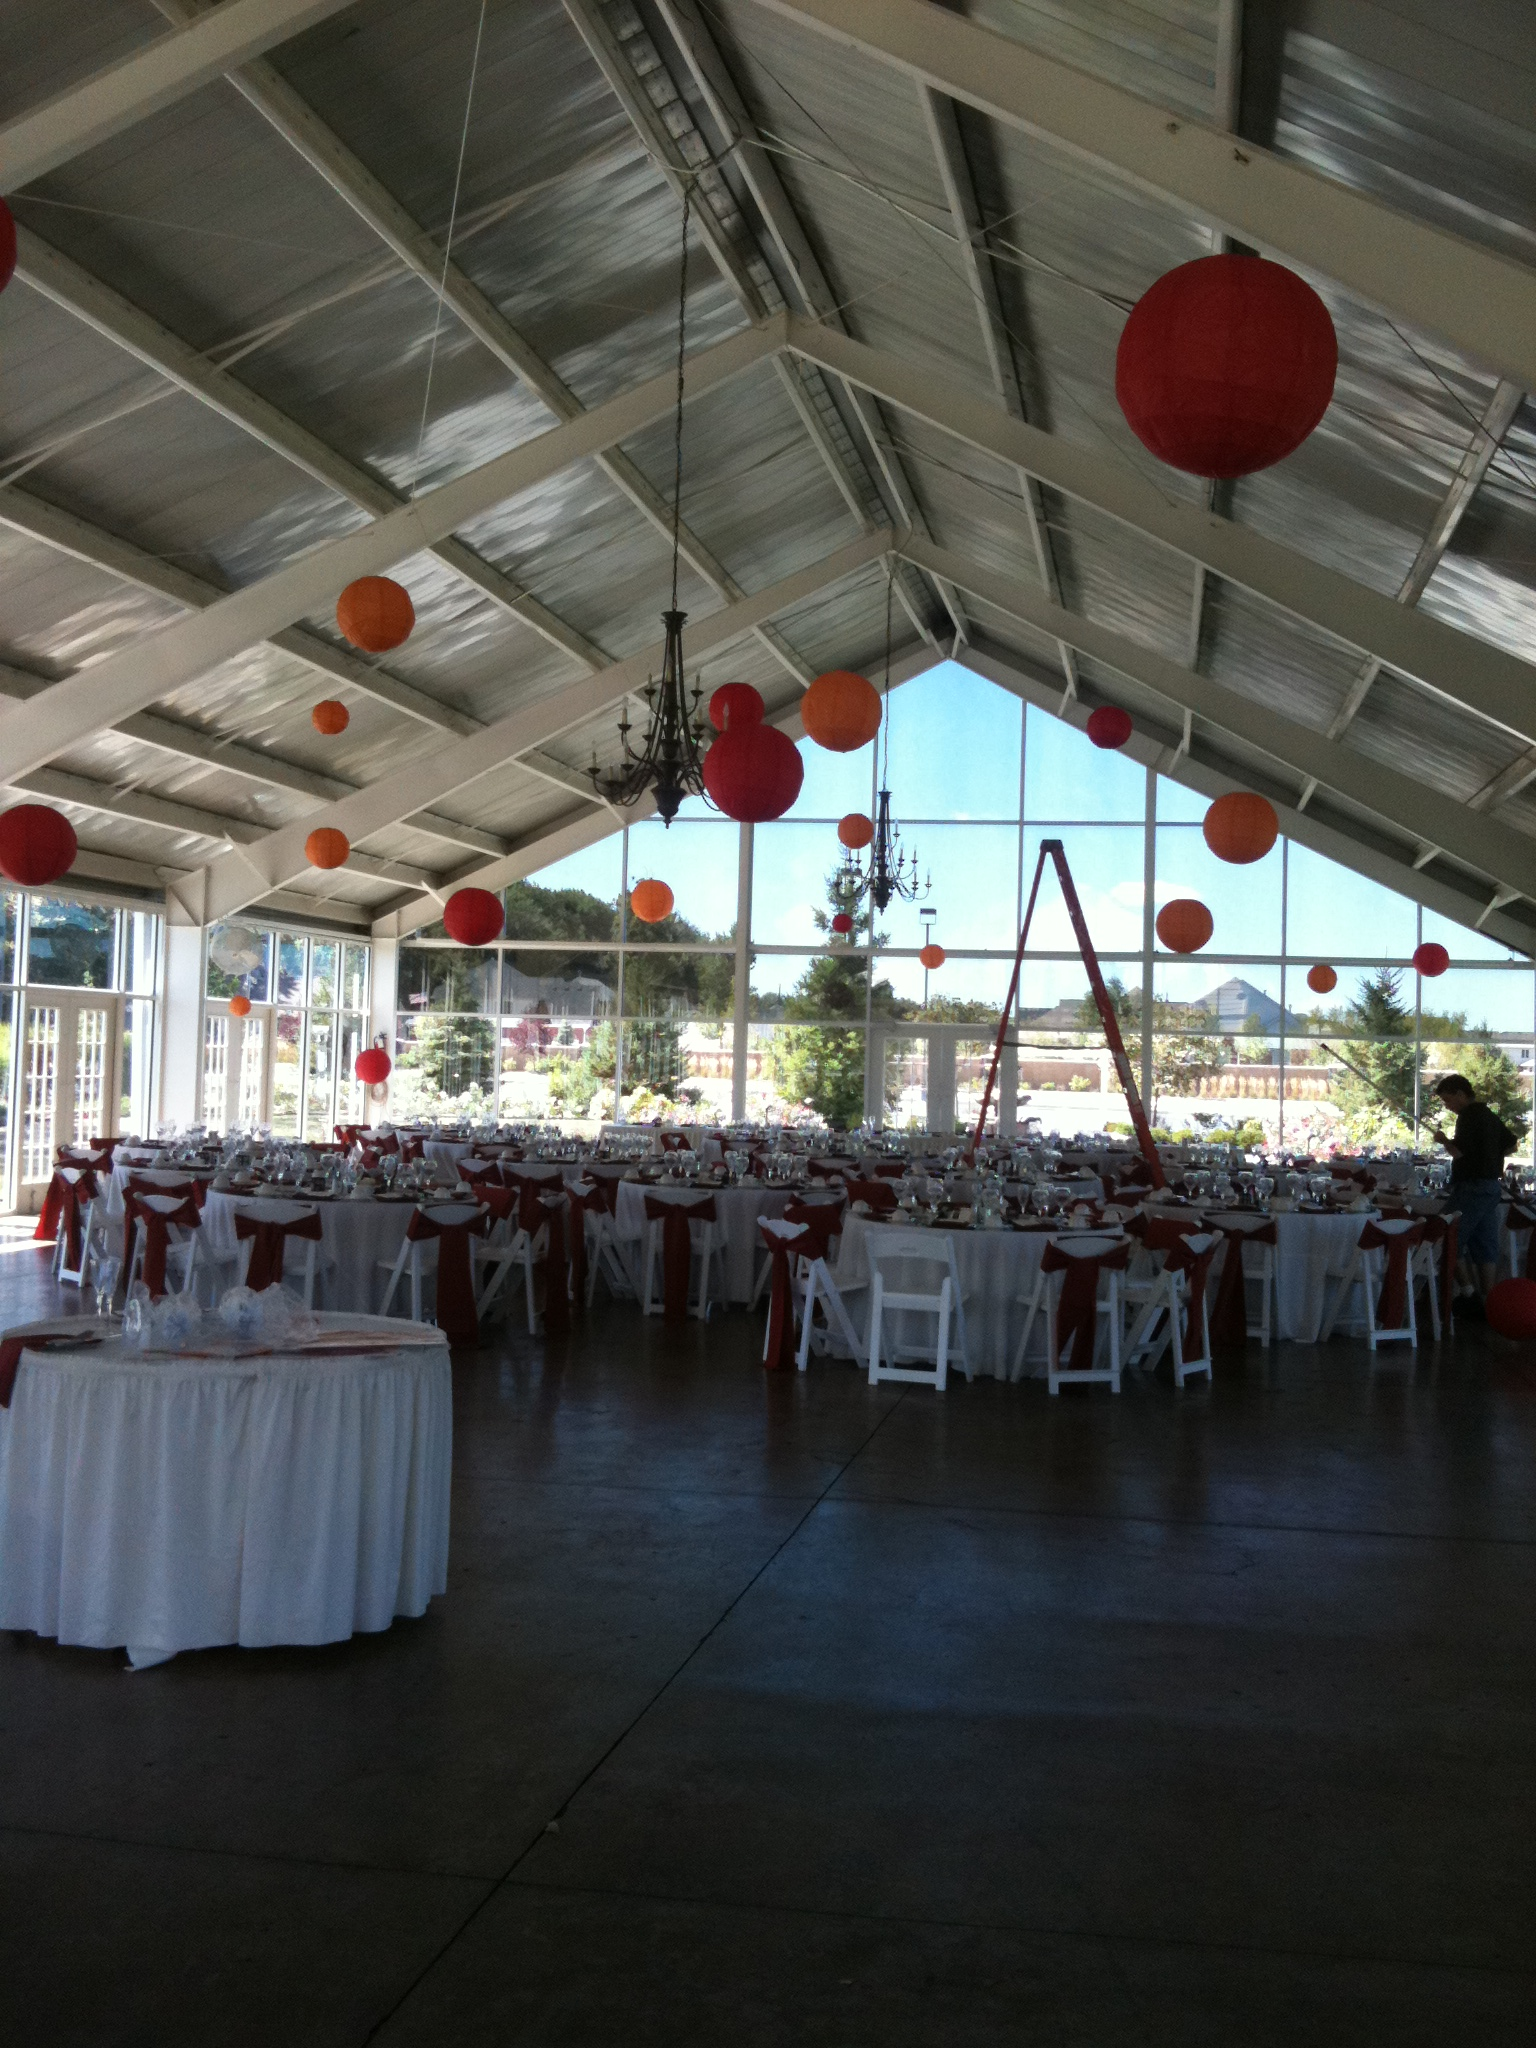 Reception Tent with round guest tables and red Chinese lanterns